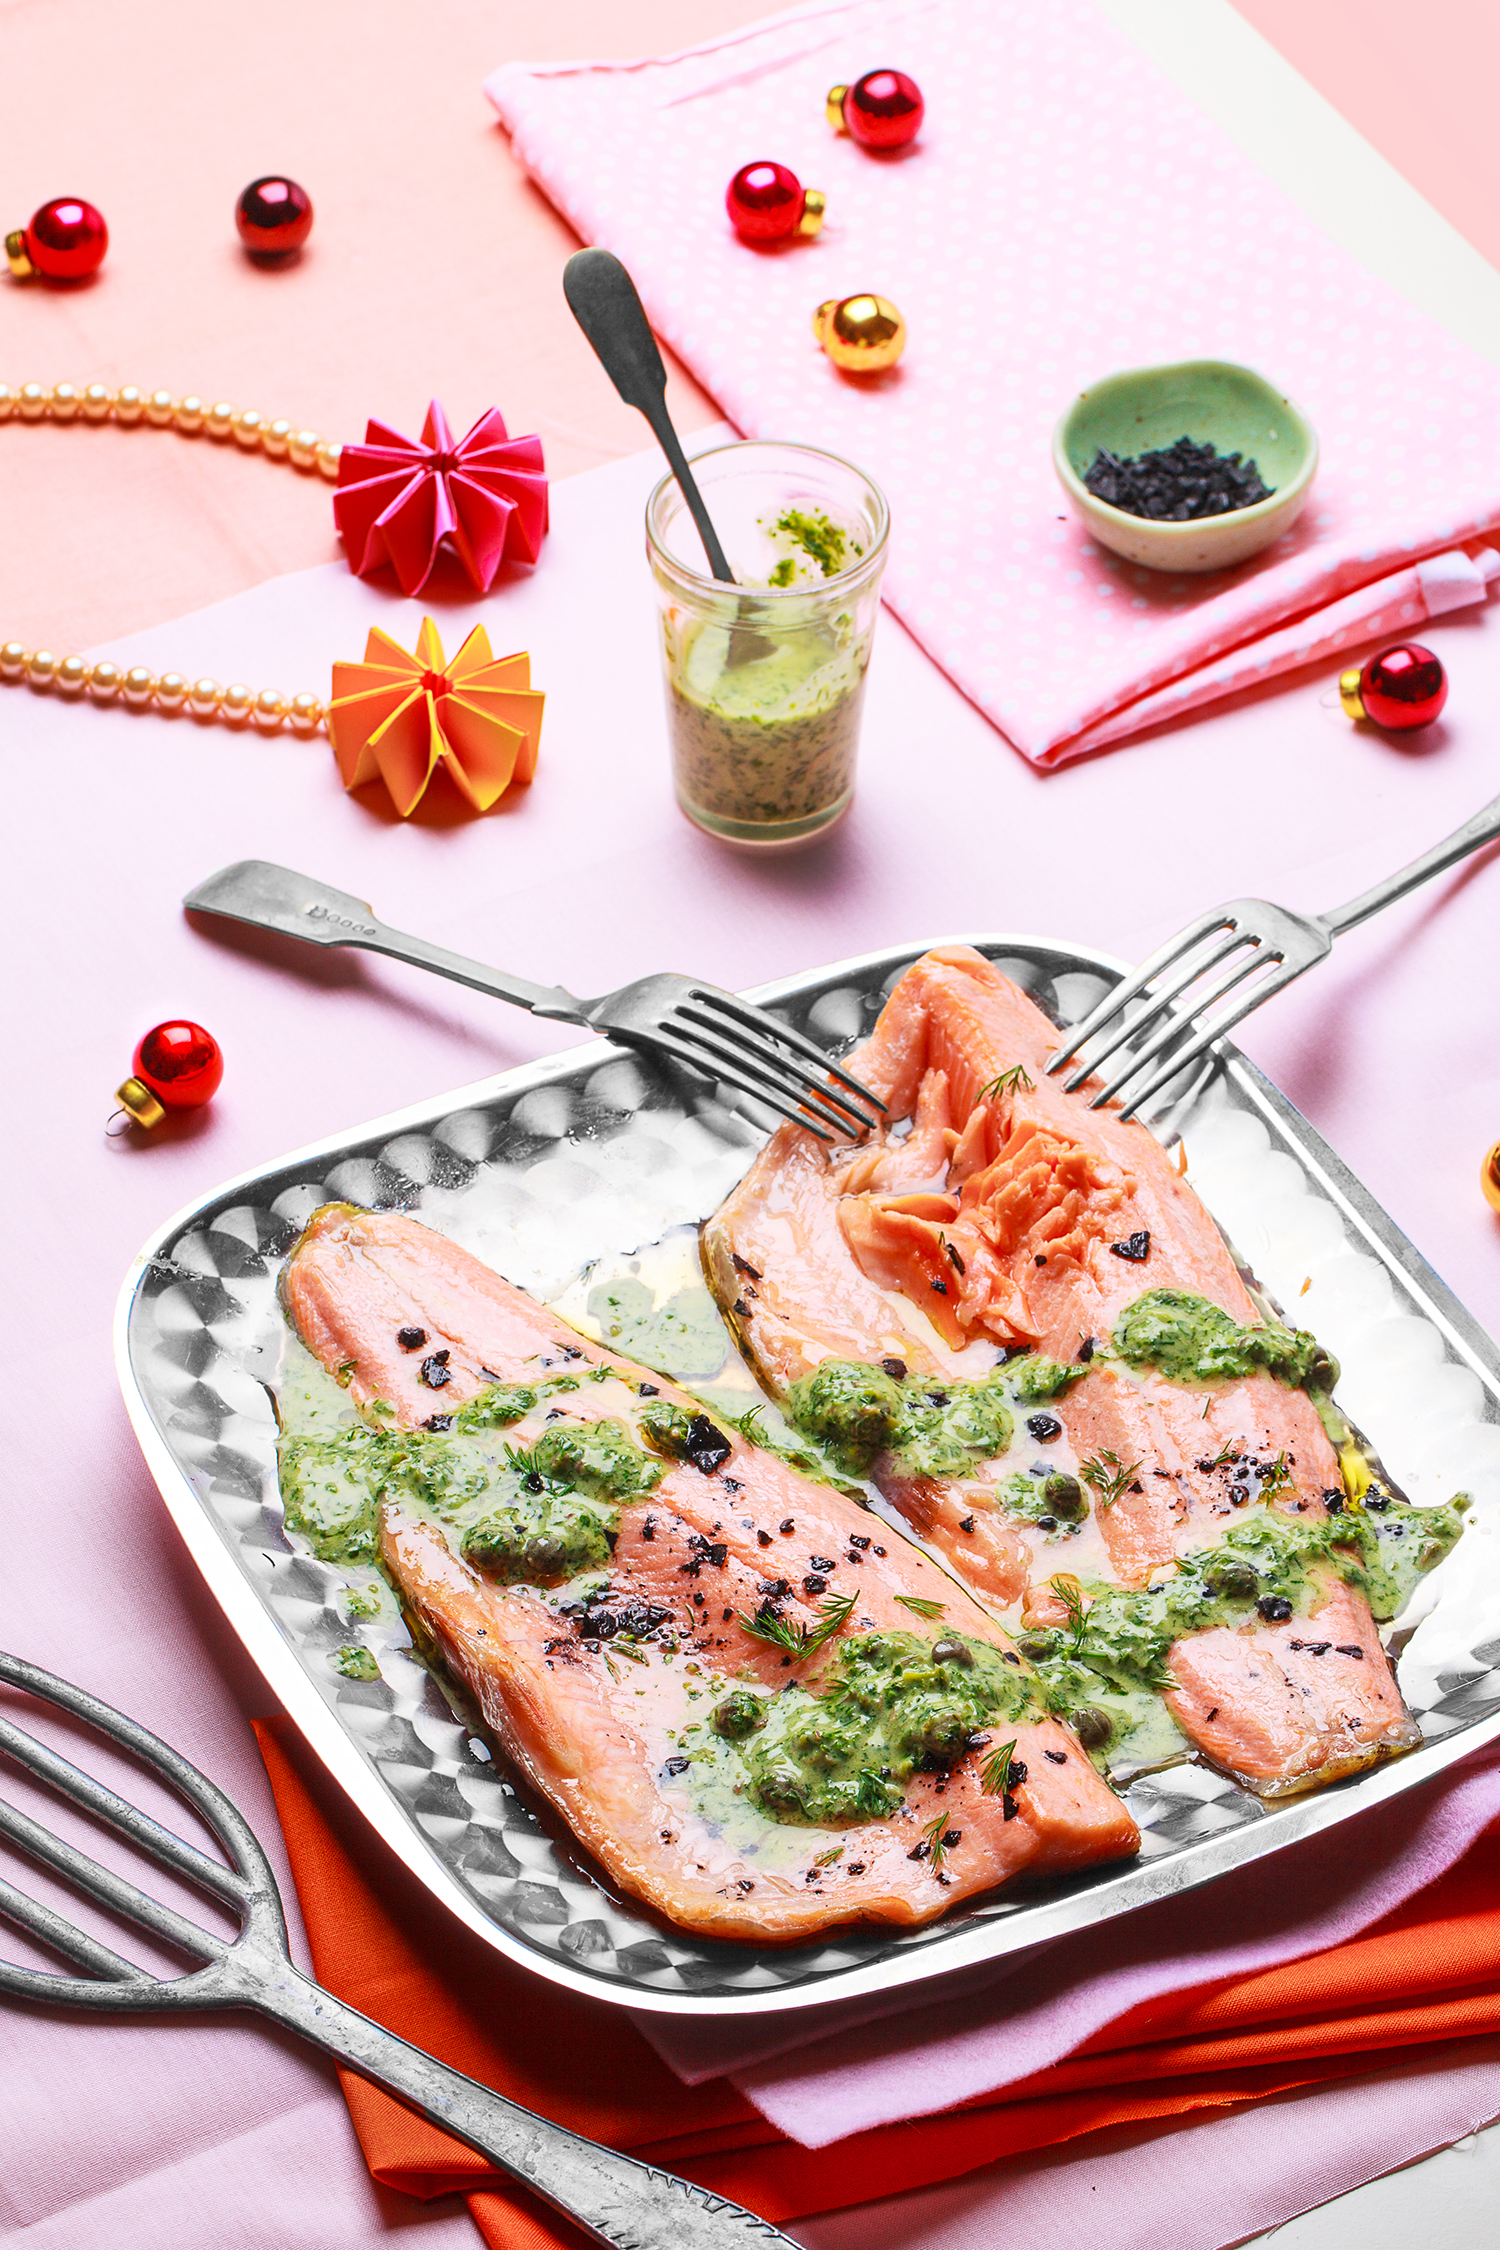 Grilled Rainbow Trout with Watercress, Caper Dressing ,   appeared originally in   Yum. Gluten Free Magazine   Dec Issue.   Recipe and styling by   Cle-ann  , photo by   Hugh Adams  .